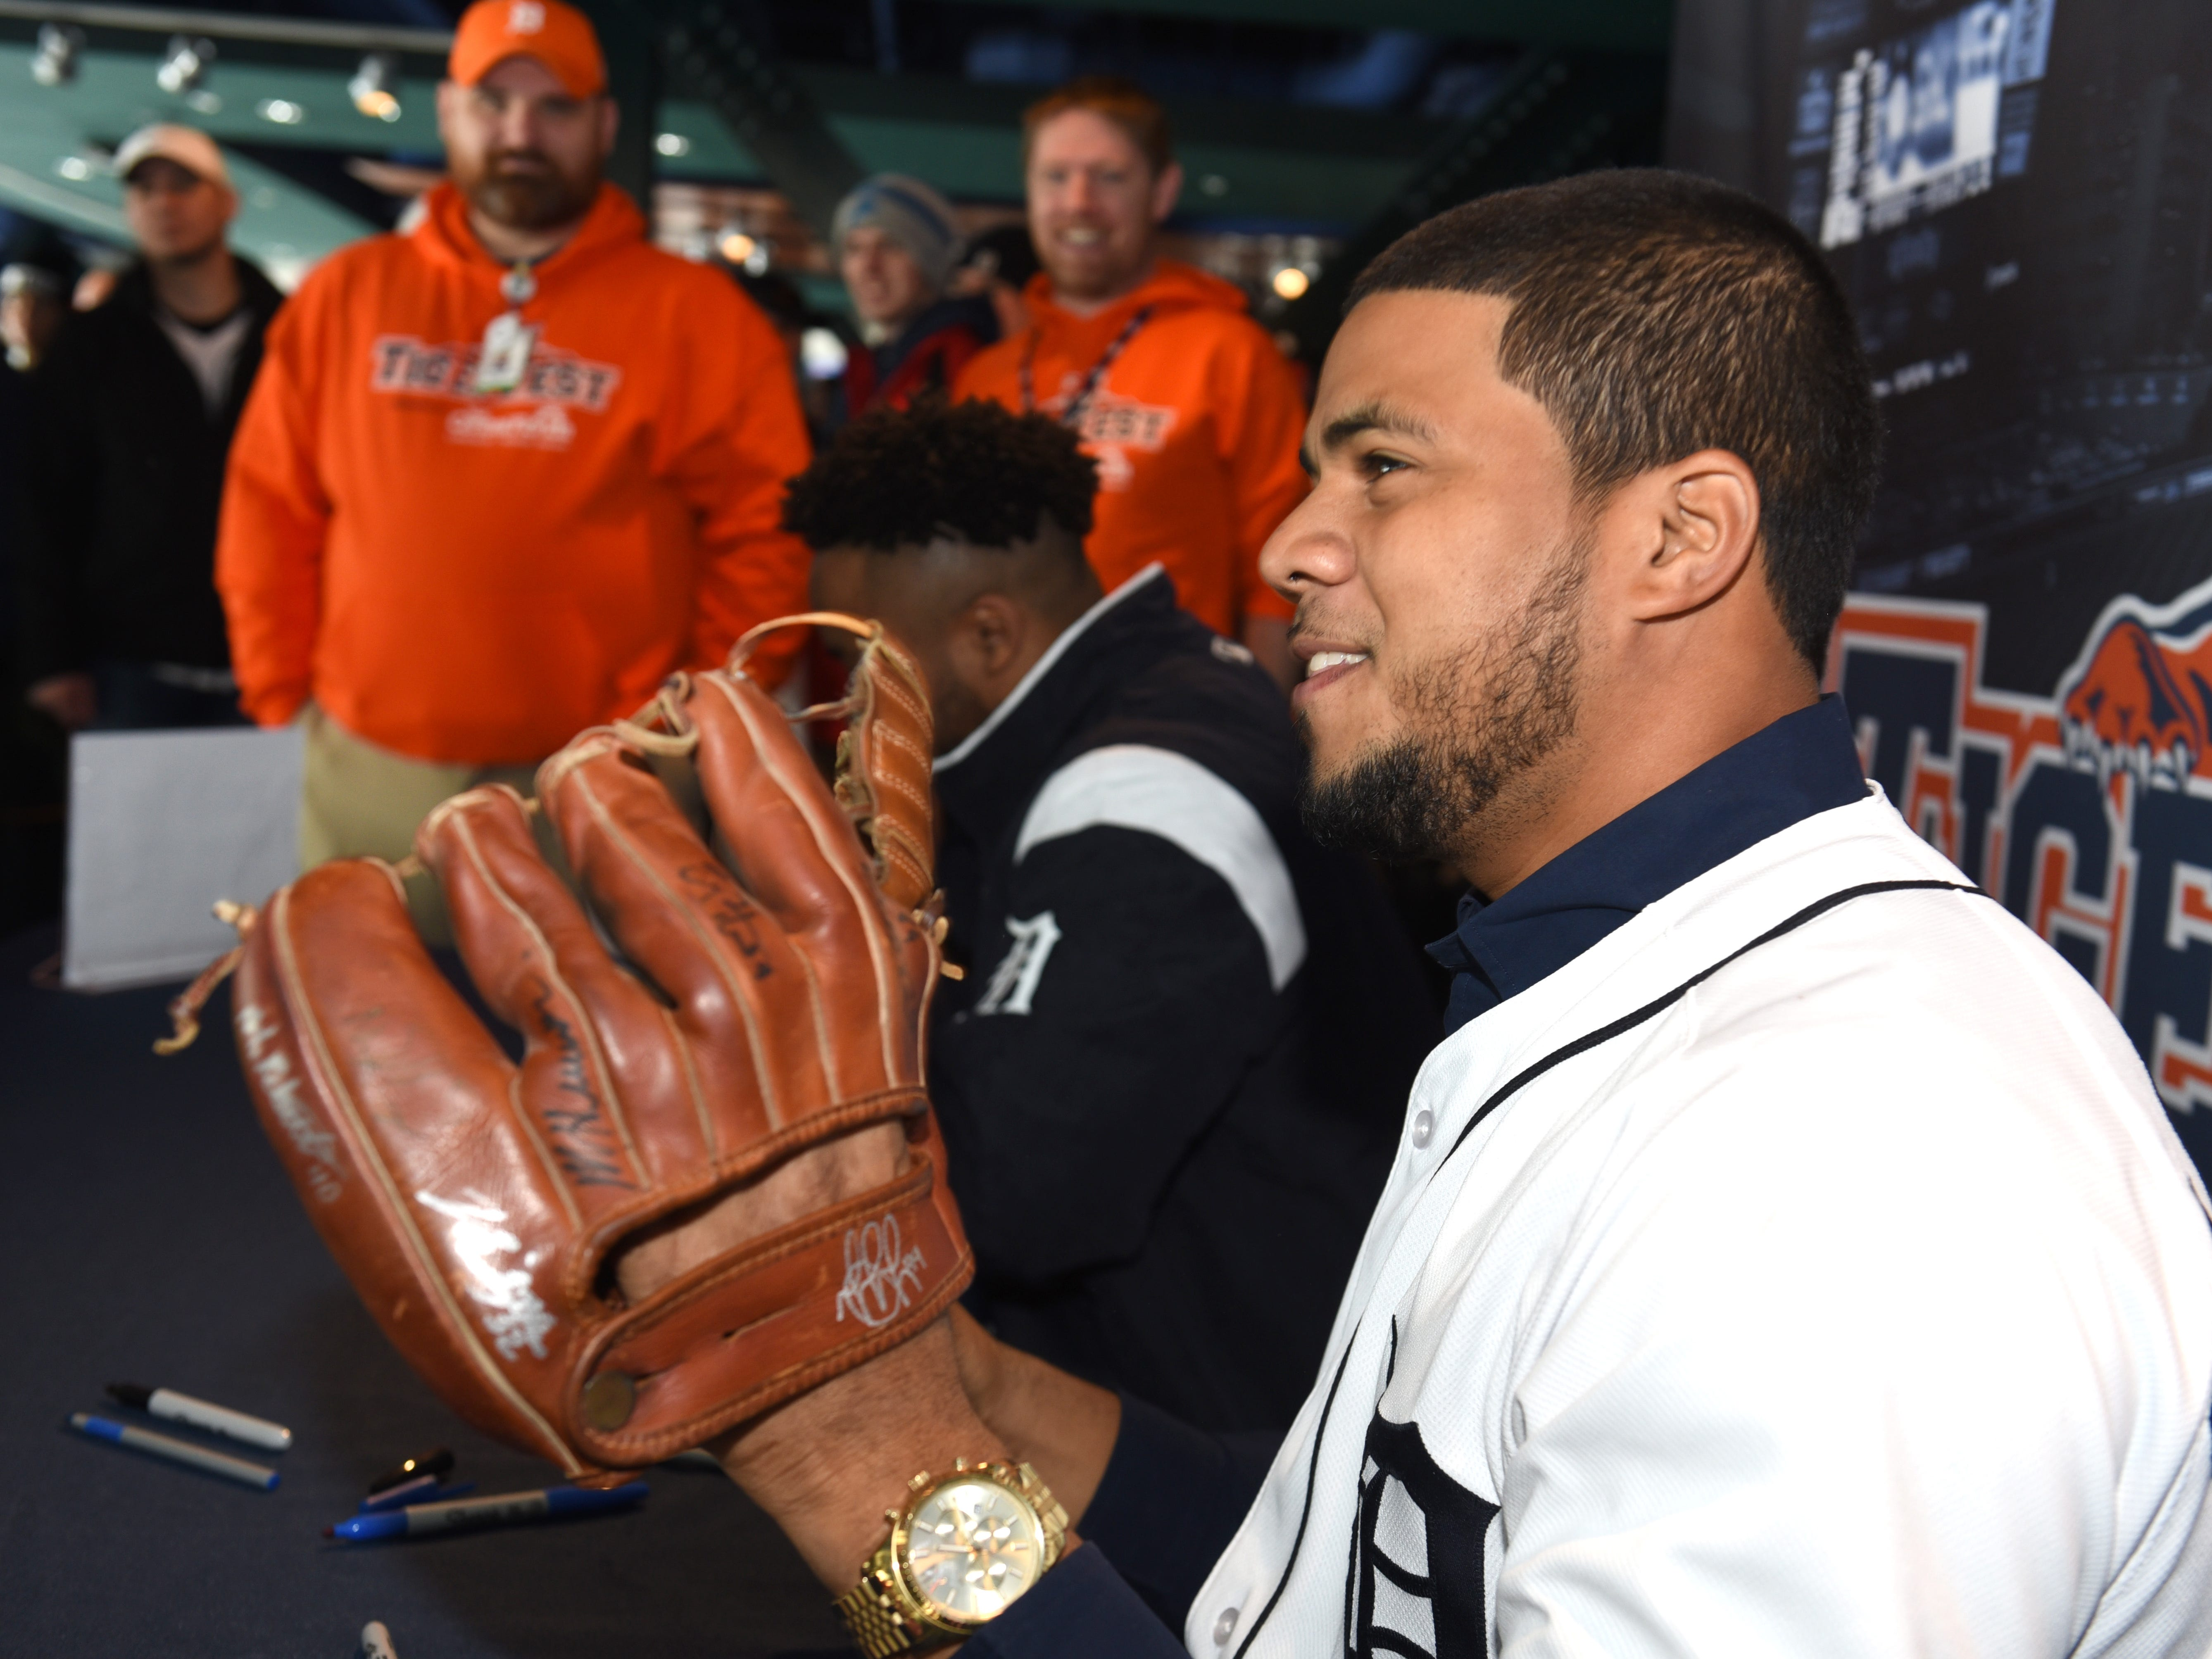 Detroit Tigers player Jeimer Candelario shows off a fans glove moments after he autographed it.